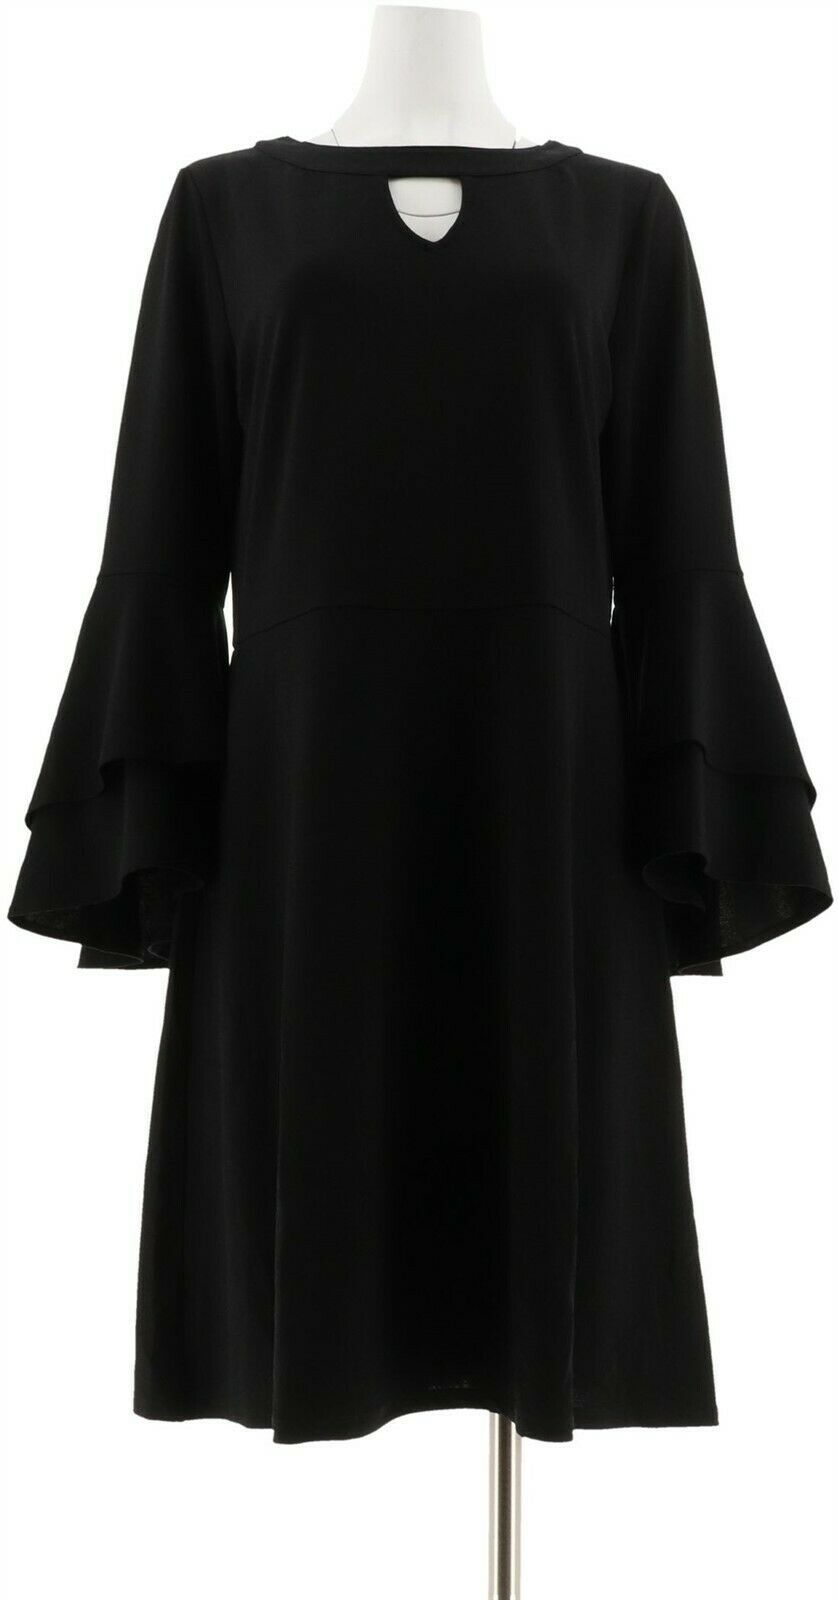 Primary image for Isaac Mizrahi Pebble Knit Keyhole Dress Ruffle Slvs Black 1X NEW A309994